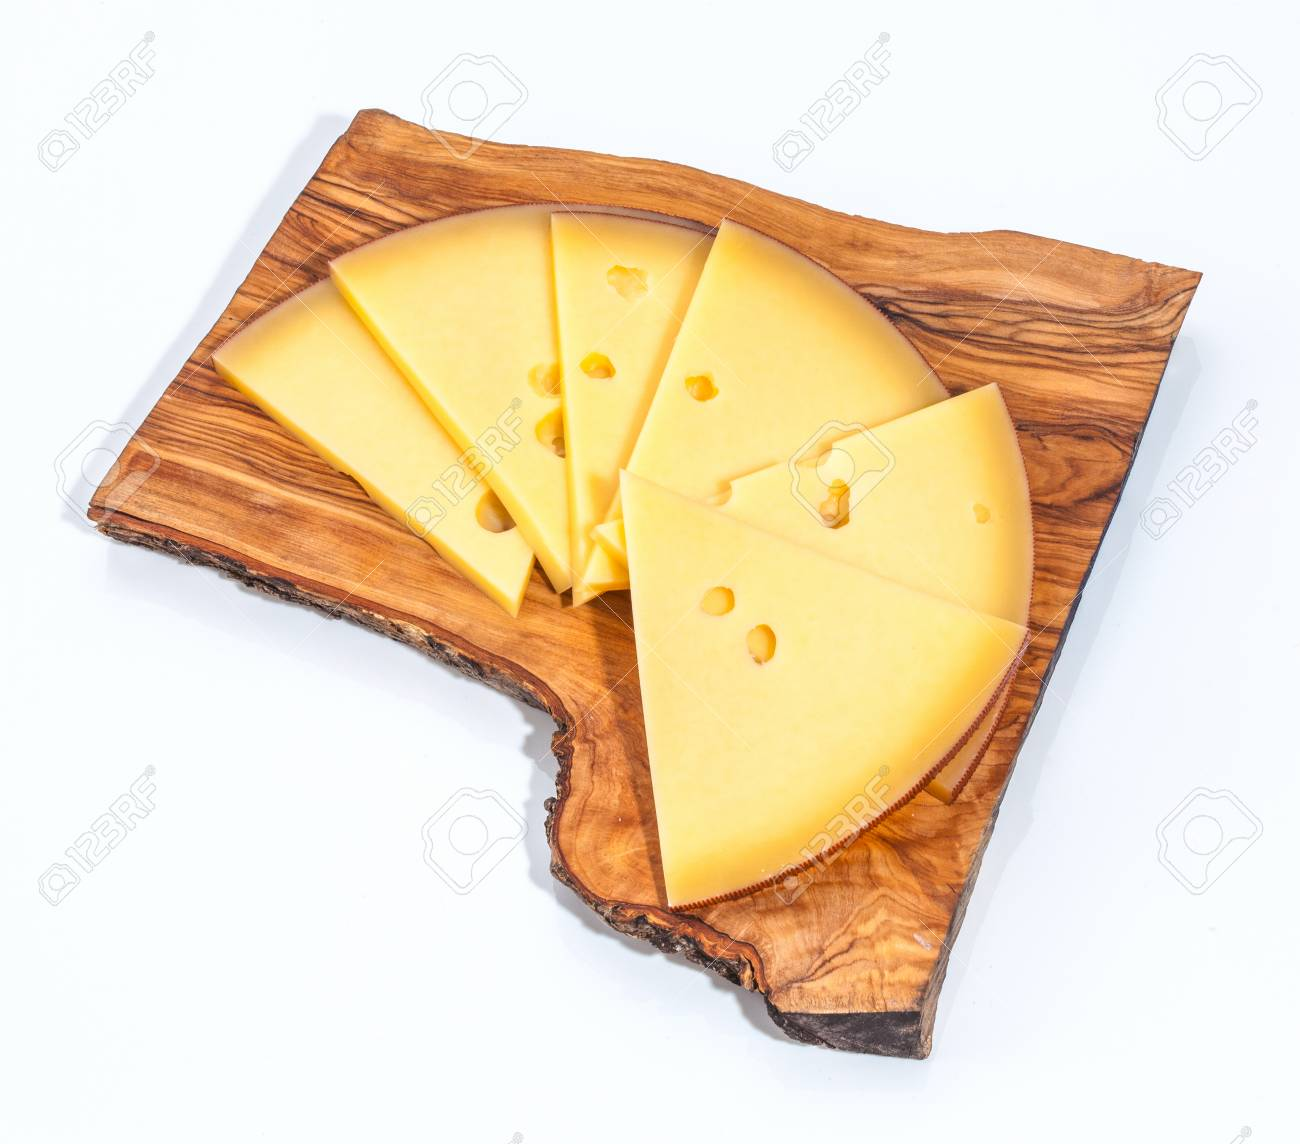 Cheese isolated and served Stock Photo - 55118190